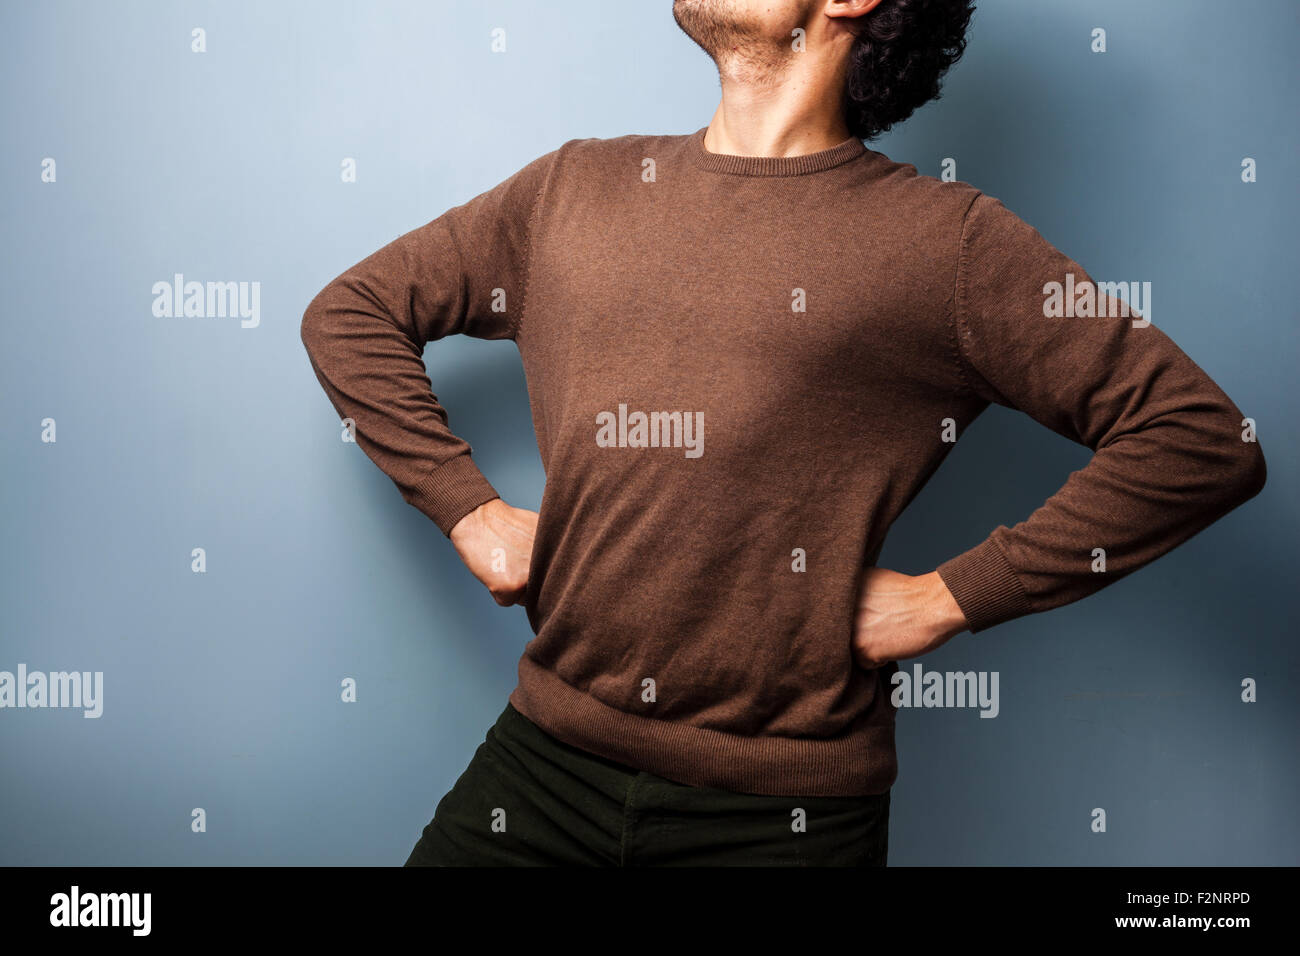 an anonymous young man is standing proudly with his hands on his hips. - Stock Image